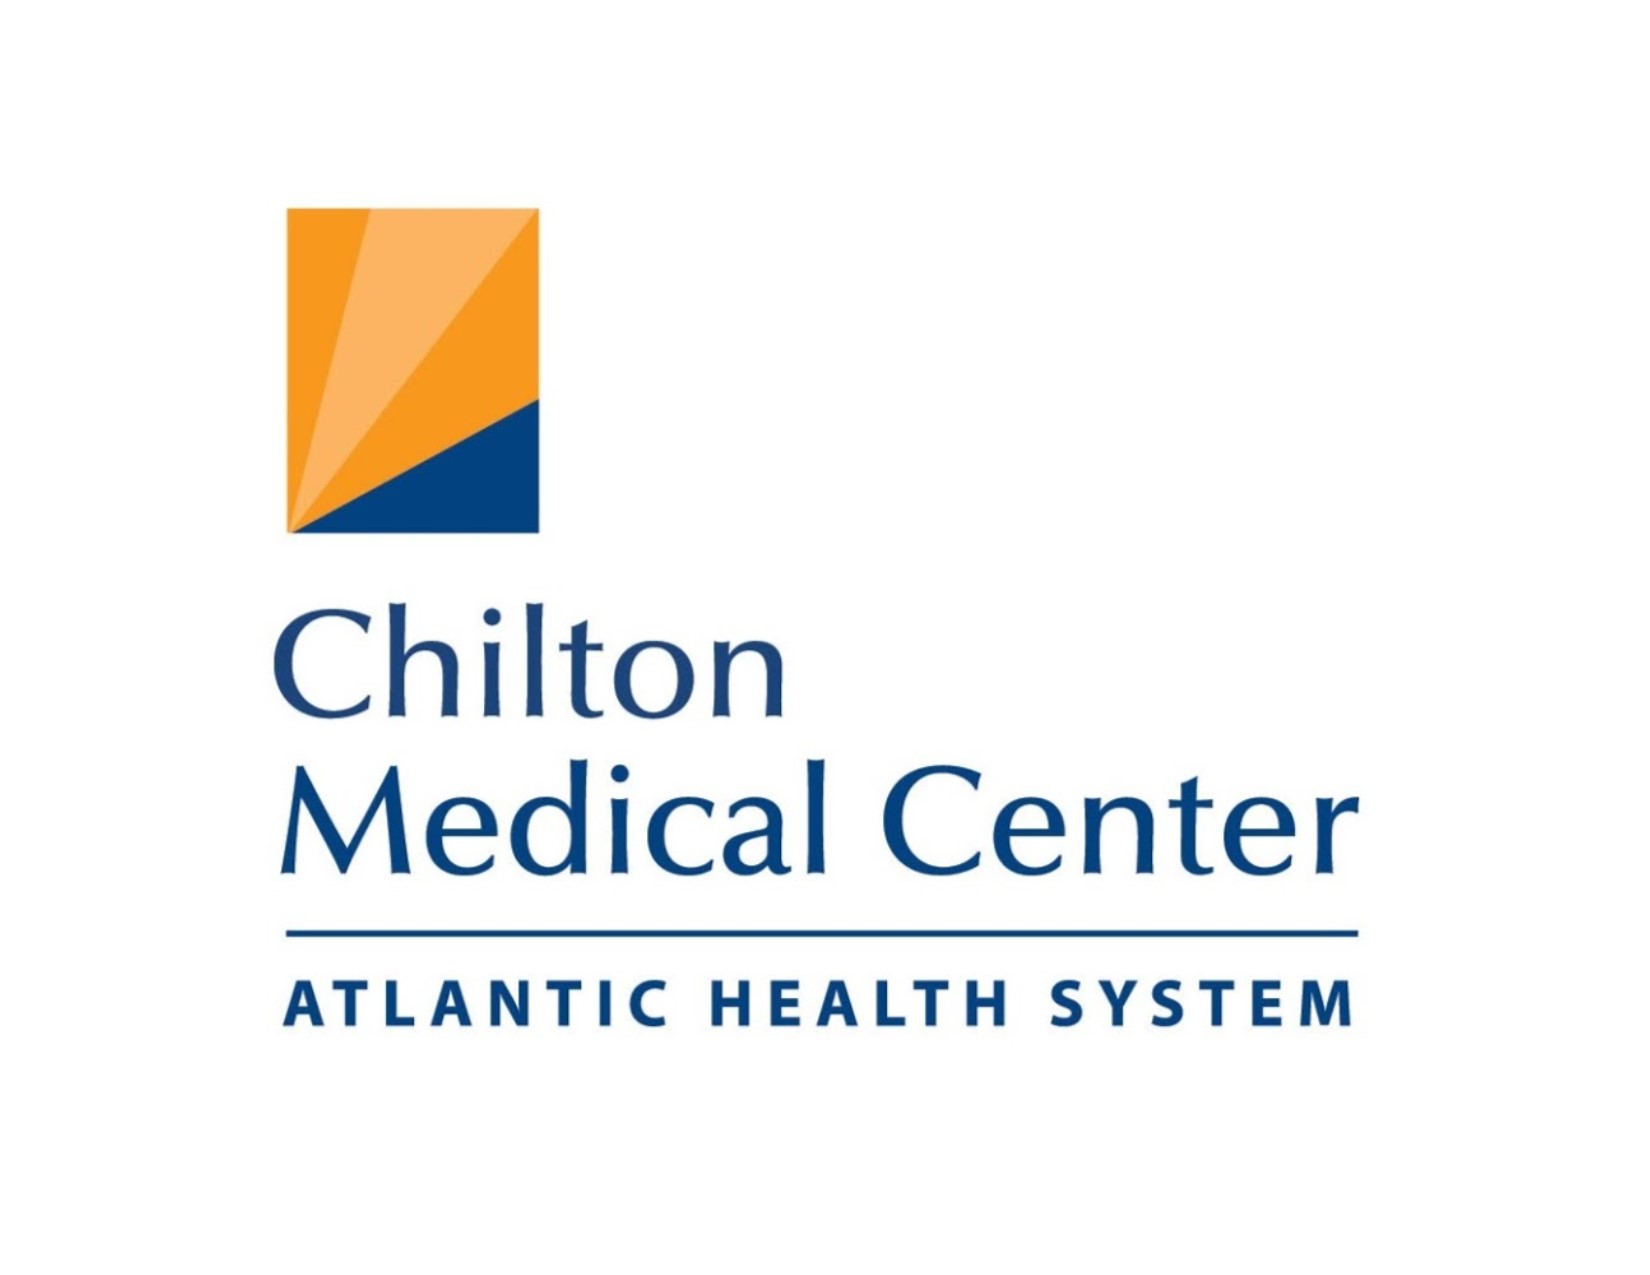 Chilton Medical Center